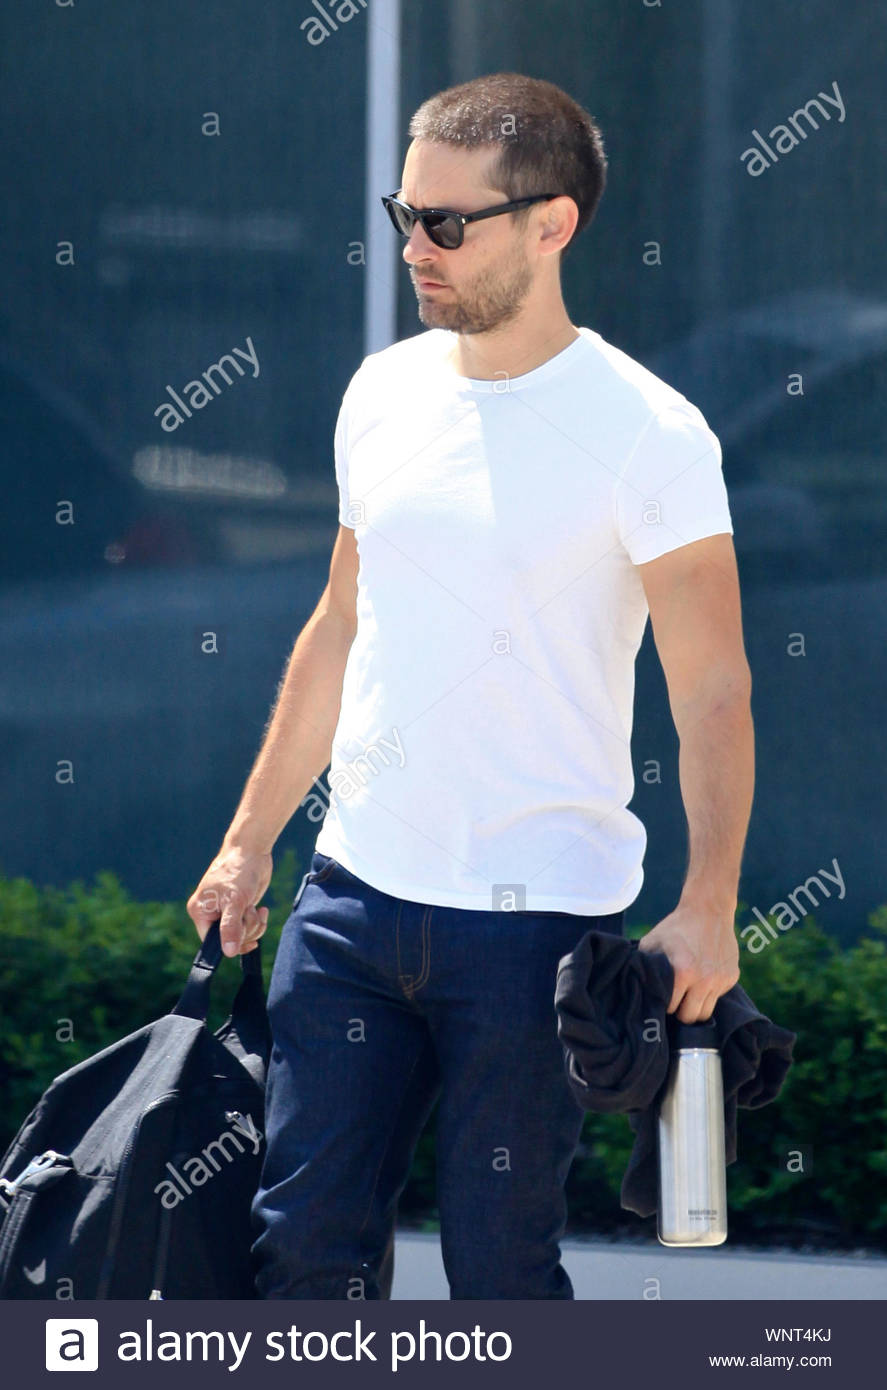 West Hollywood Ca Tobey Maguire Looks As If He S Not In The Mood For Anything As He Makes His Way Back To His Vehicle The Former Spider Man Actor Is A Regular